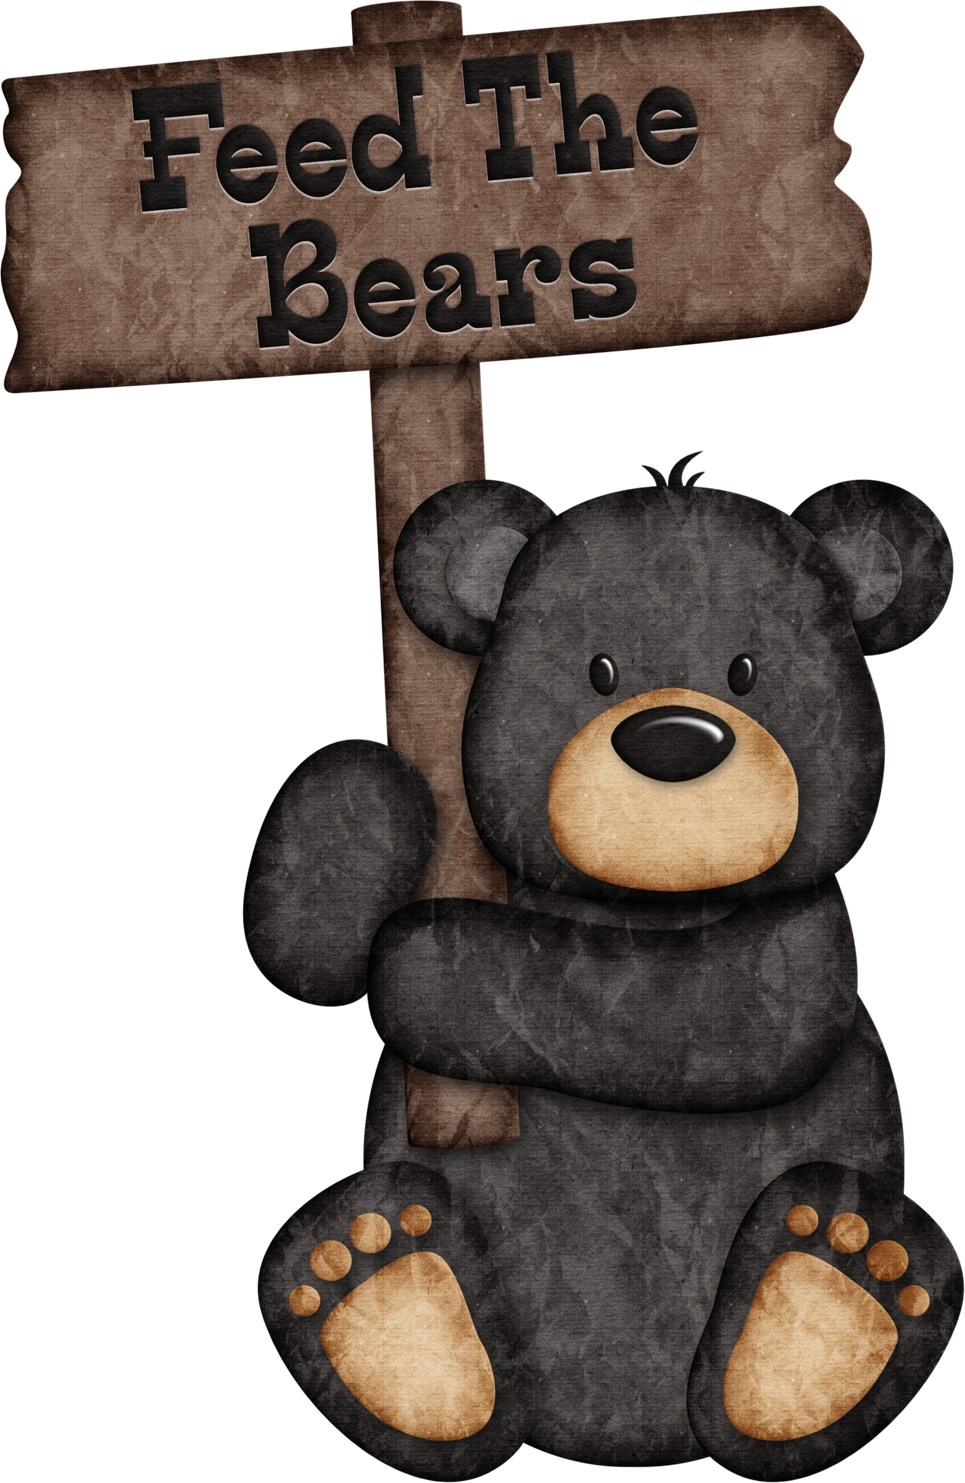 graphic royalty free download Feed the bears christine. Black bear clipart